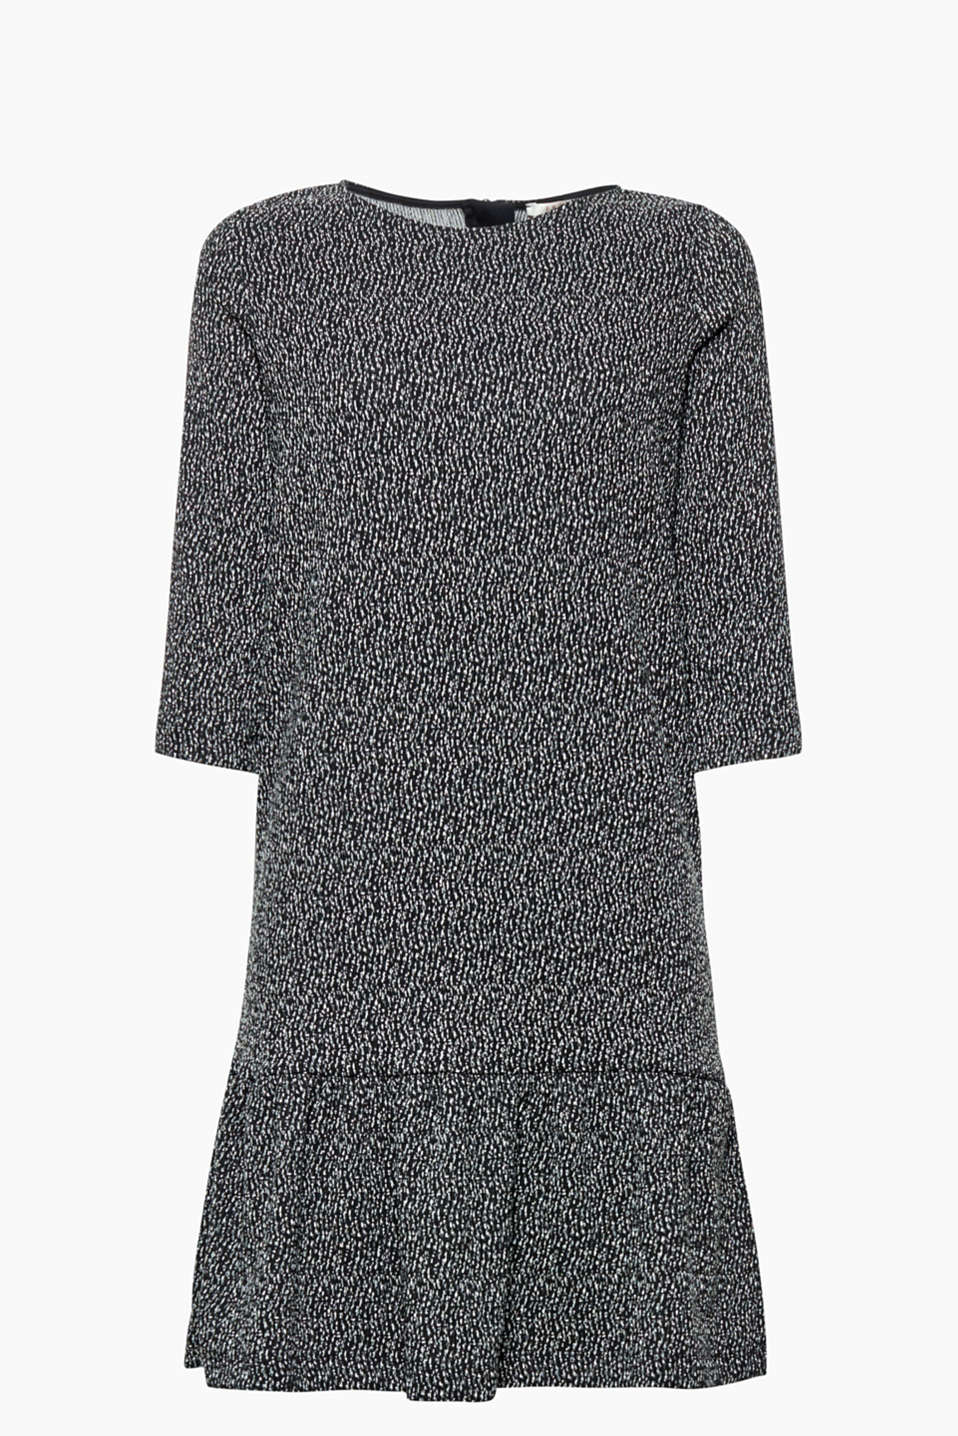 This jersey dress with a two tone texture and swirling skirt gives you a feminine flair and super comfort!